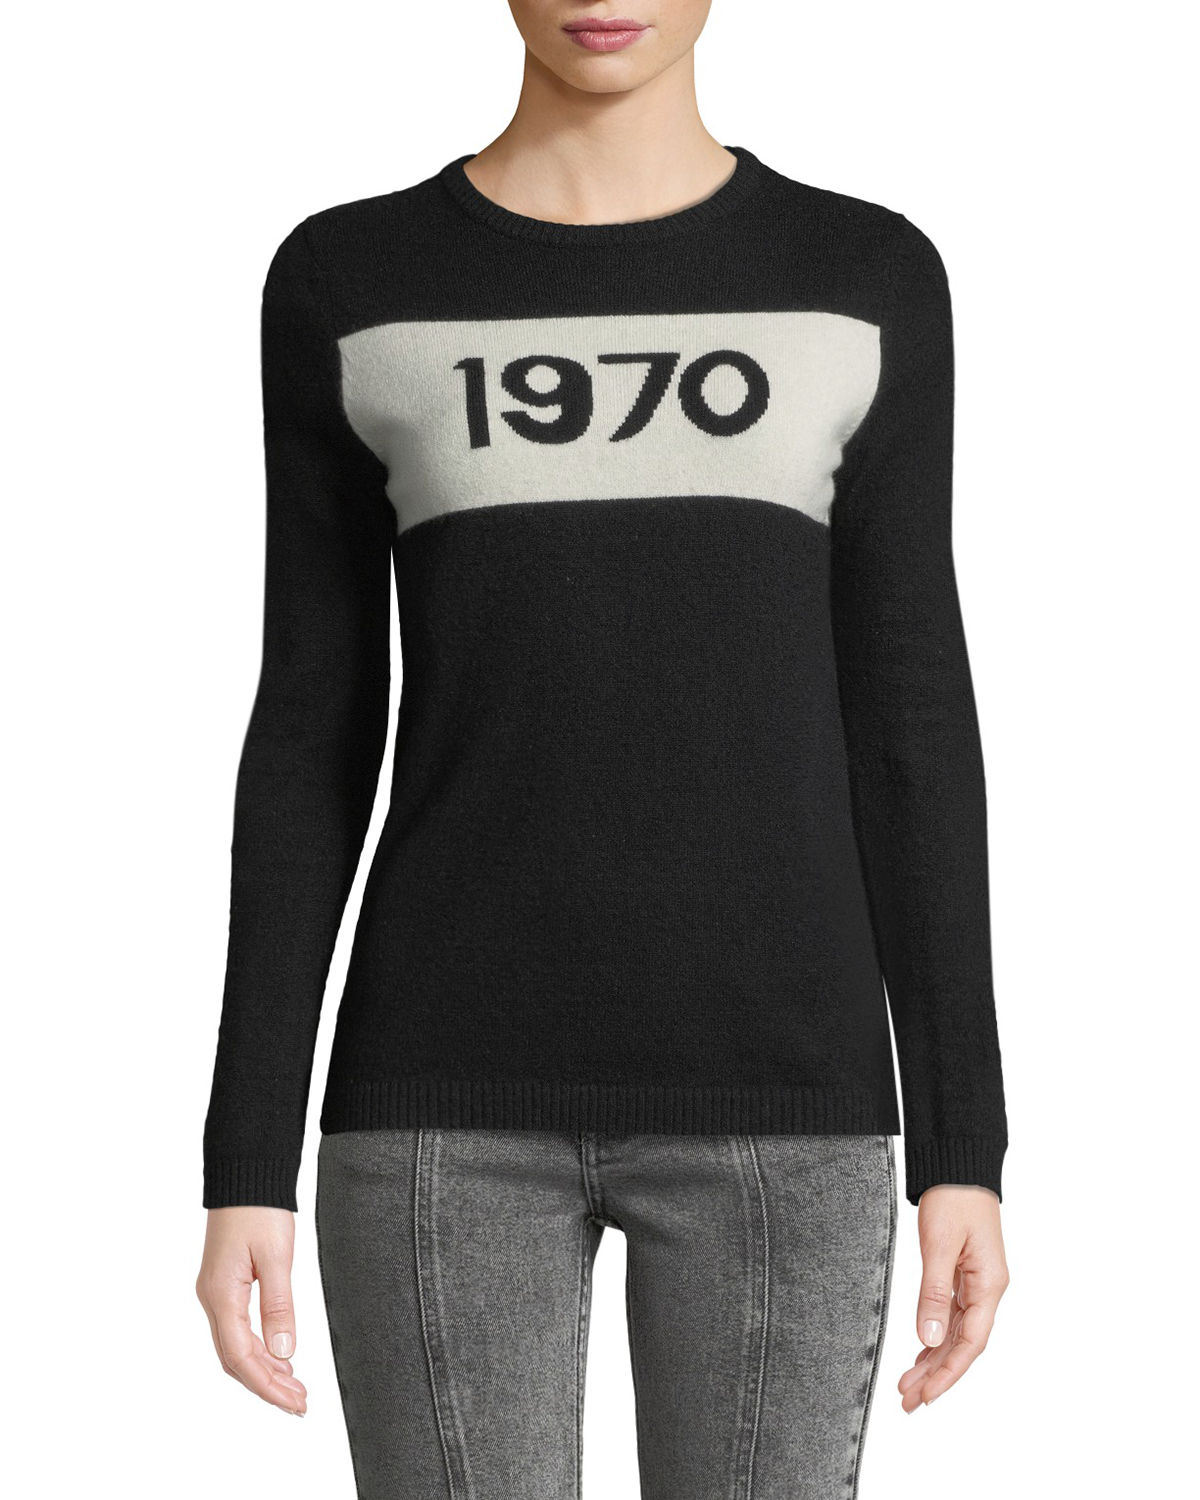 1970 Graphic Pullover Sweater